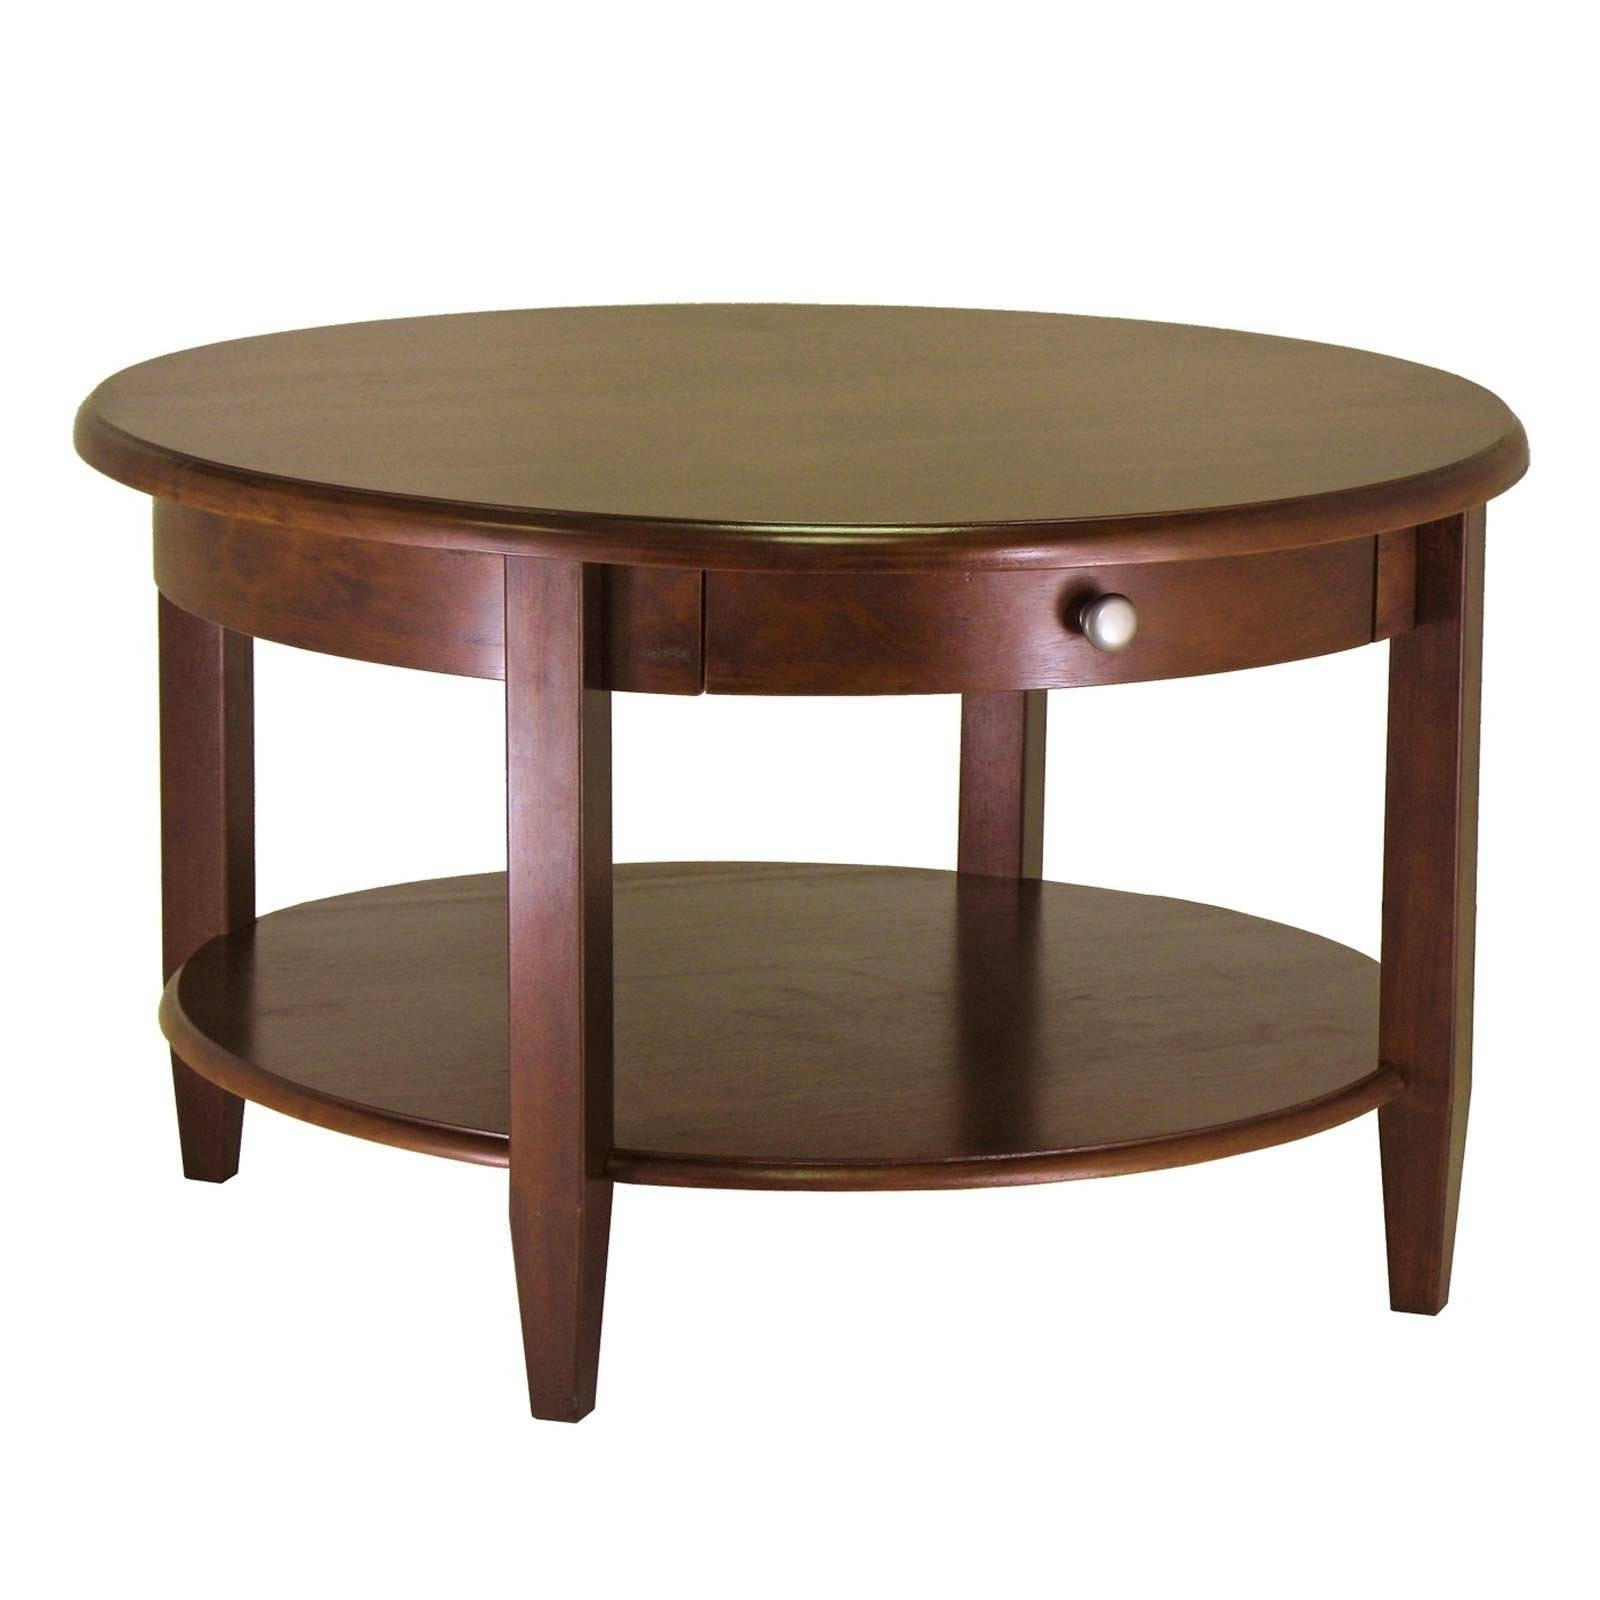 Table : Round Glass Coffee Table With Wood Base Cabin Entry Modern In Kids Coffee Tables (View 24 of 30)